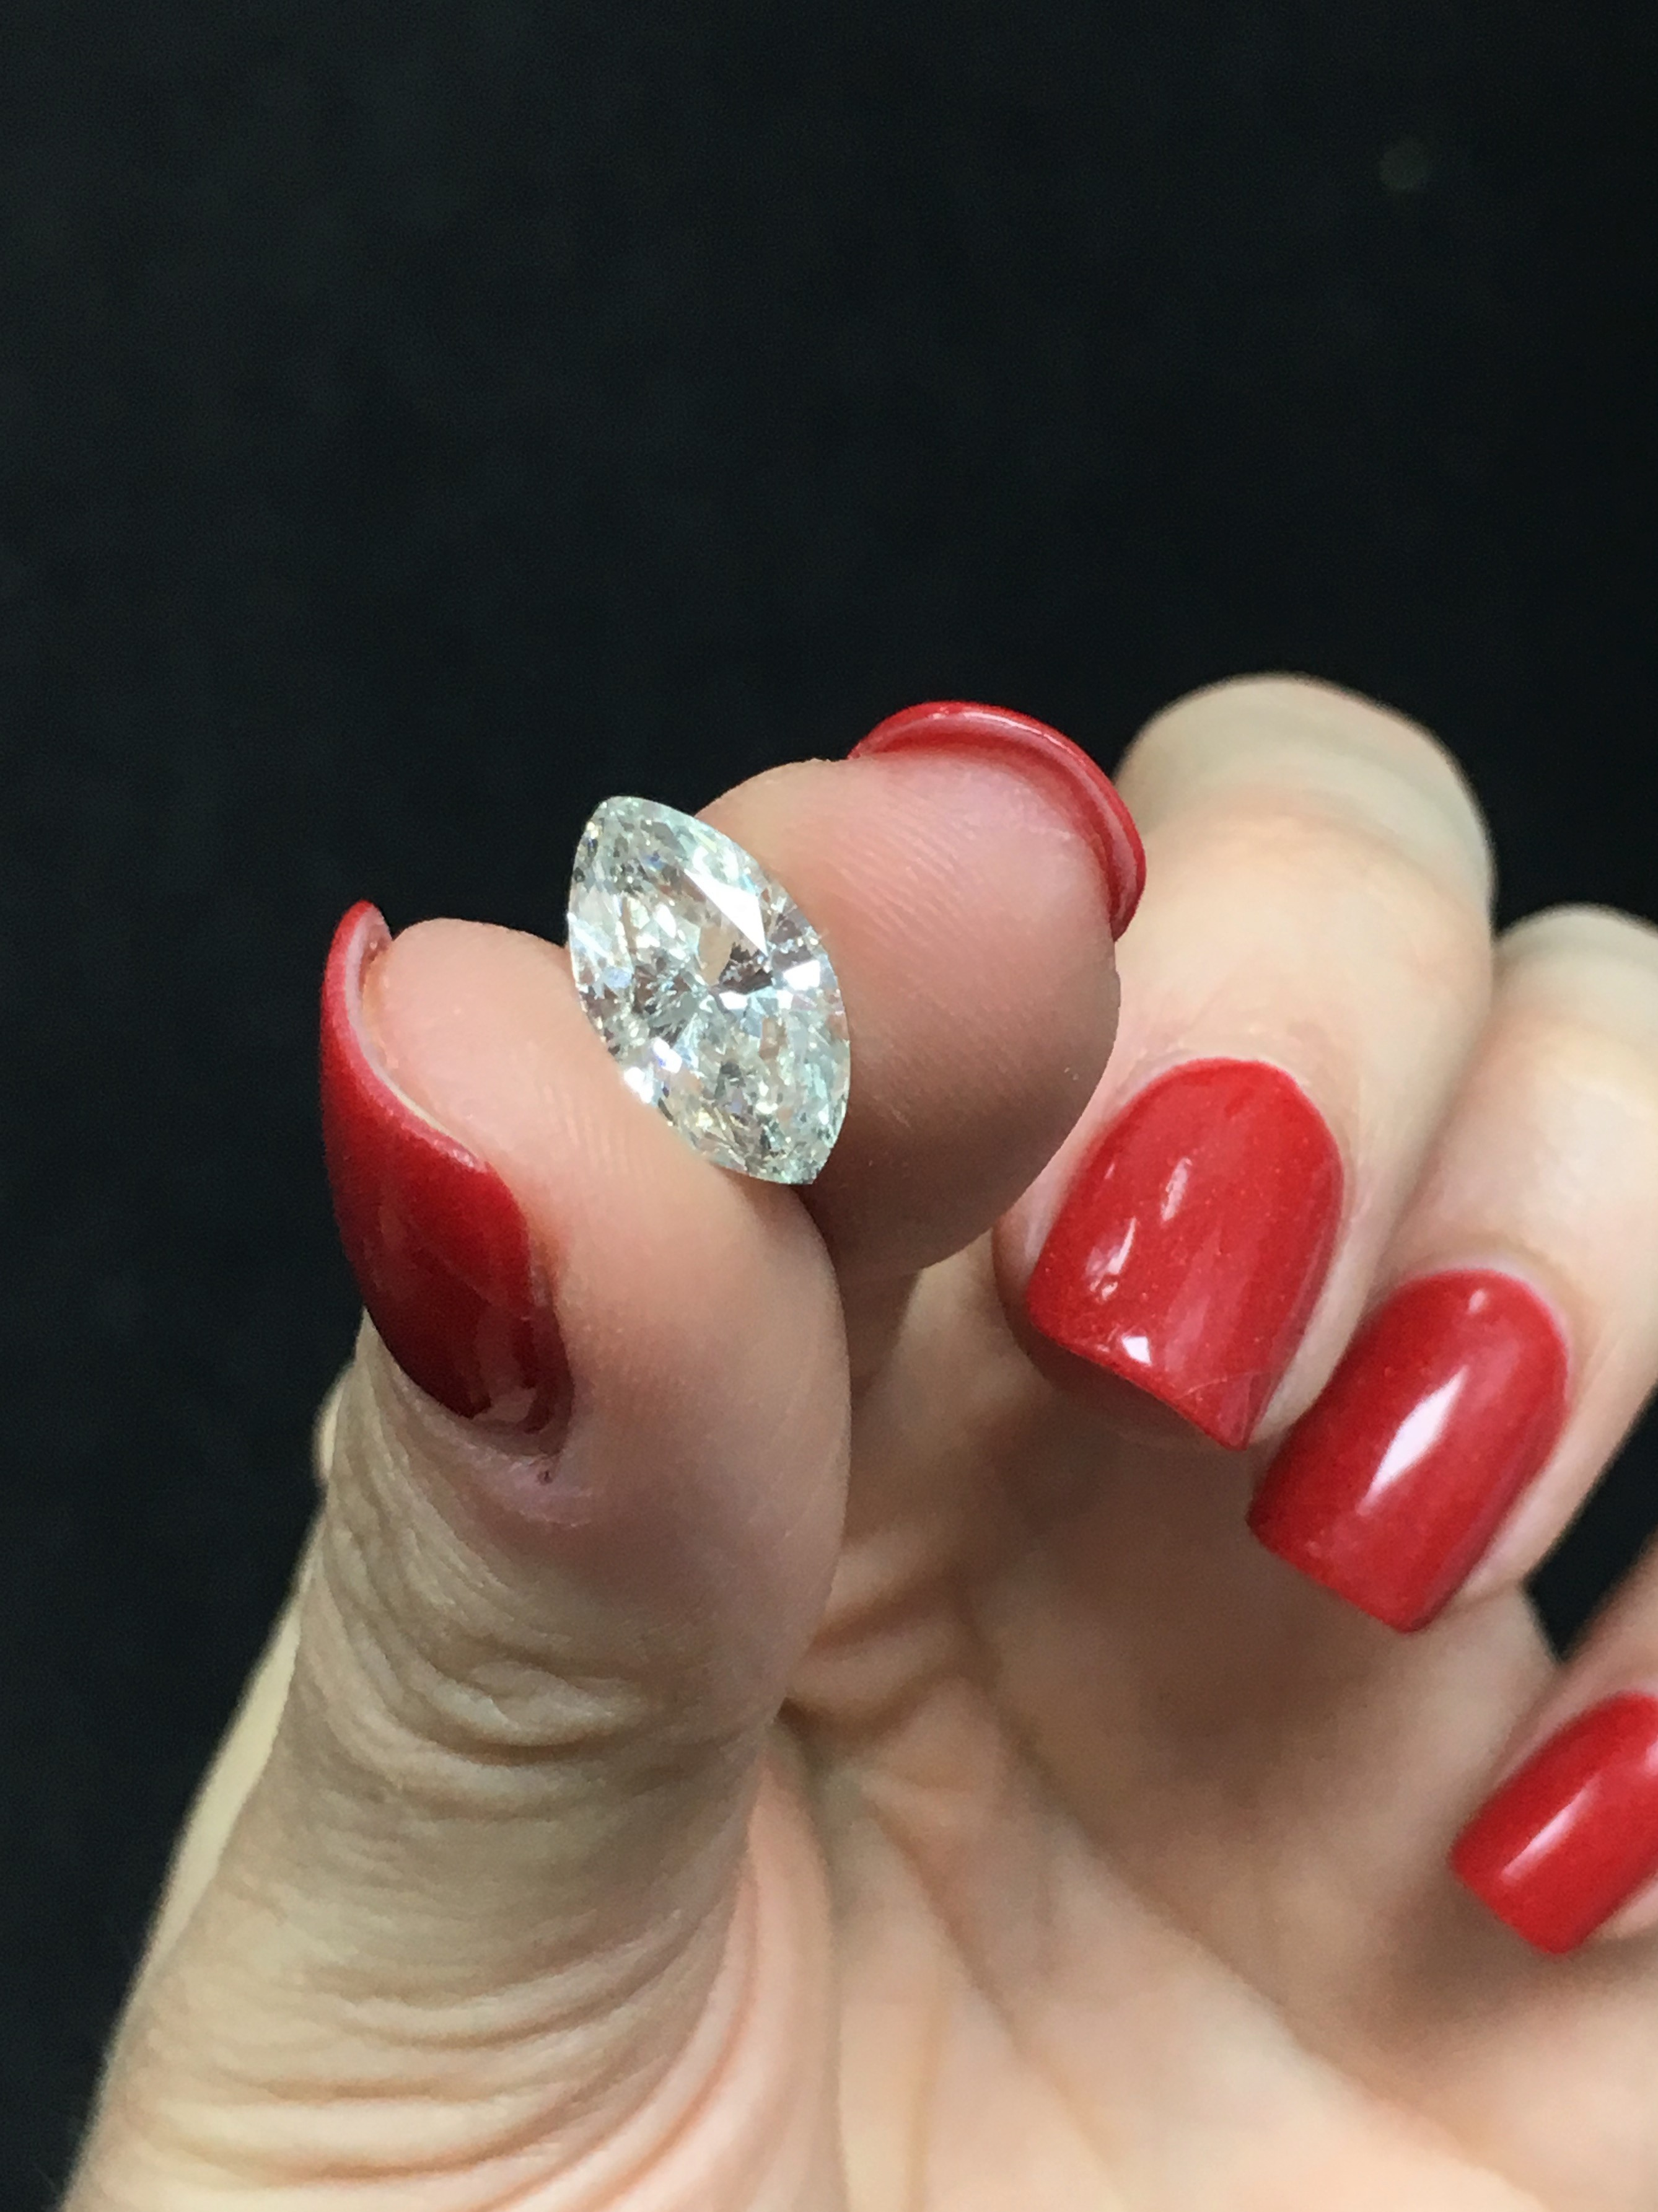 Dazzling 2.89 cts marquise shape loose diamond